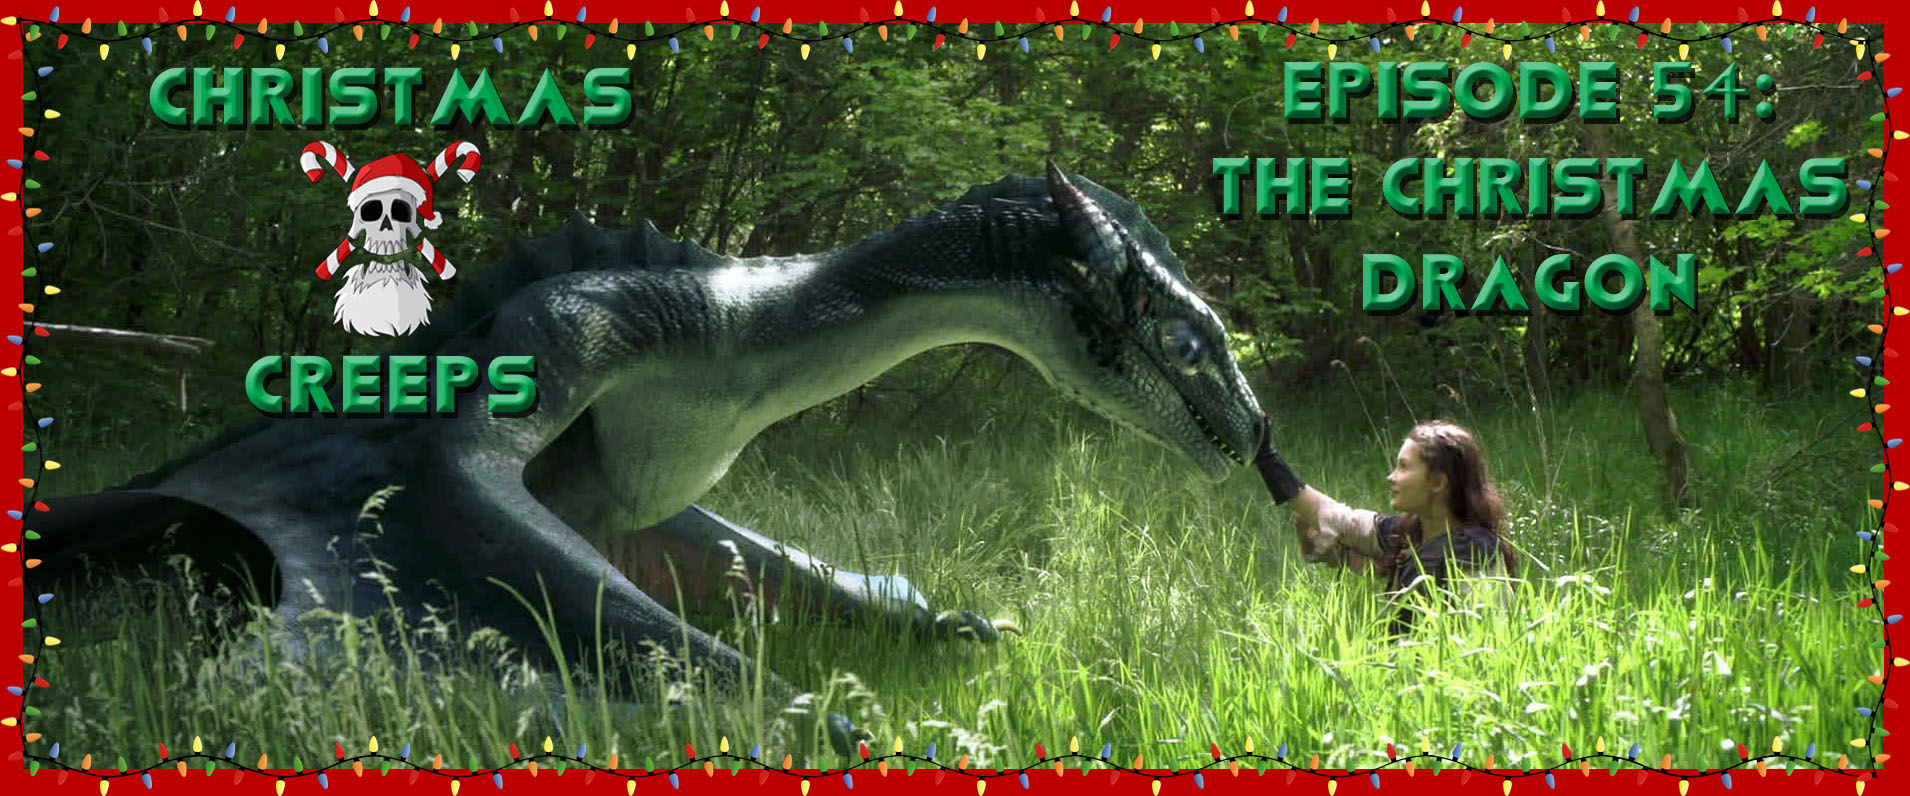 The Christmas Dragon.Episode 54 The Christmas Dragon Christmas Creeps